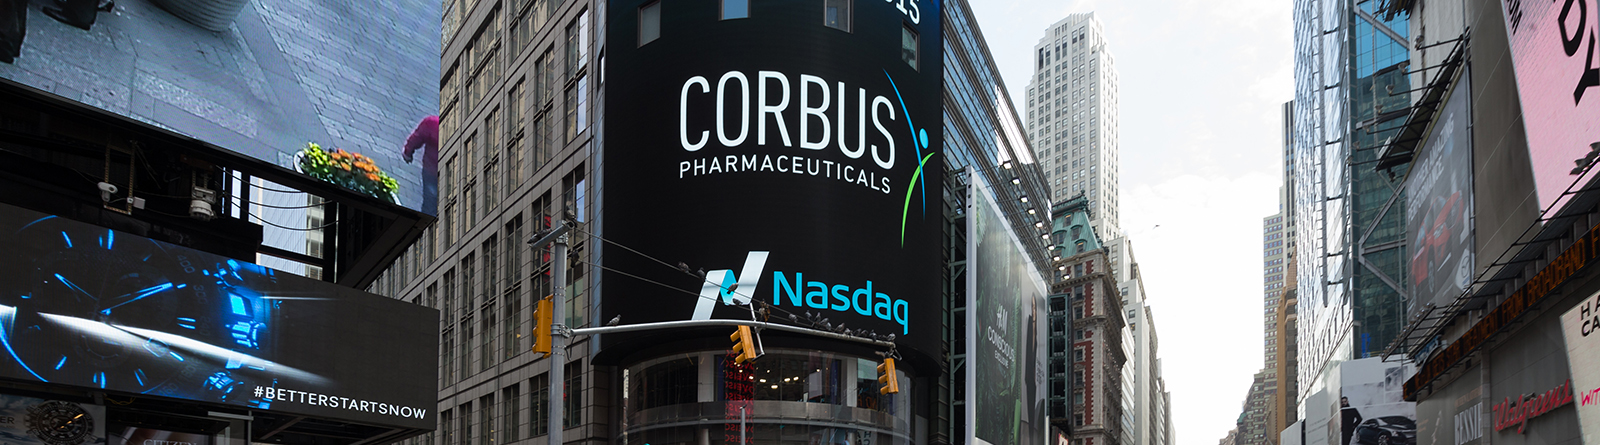 Corbus Announces Publication of Lenabasum Systemic Sclerosis Double-Blind, Placebo-Controlled Phase 2 Clinical Trial Results in Arthritis & Rheumatology Banner